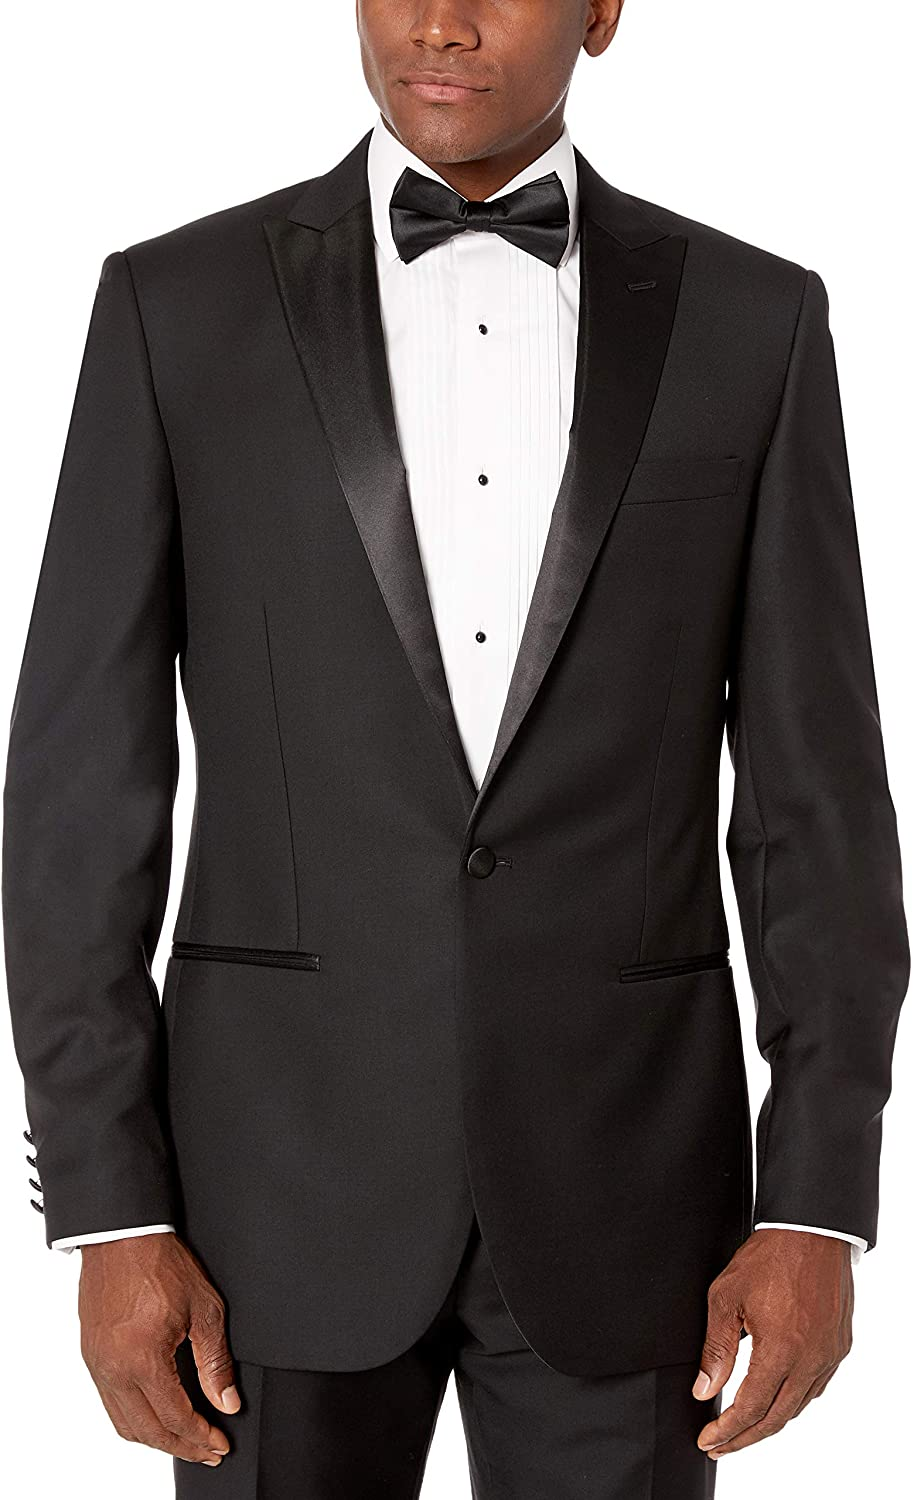 DHgate Brand - Buttoned Down Men's Classic Fit Italian Wool Tuxedo Jacket